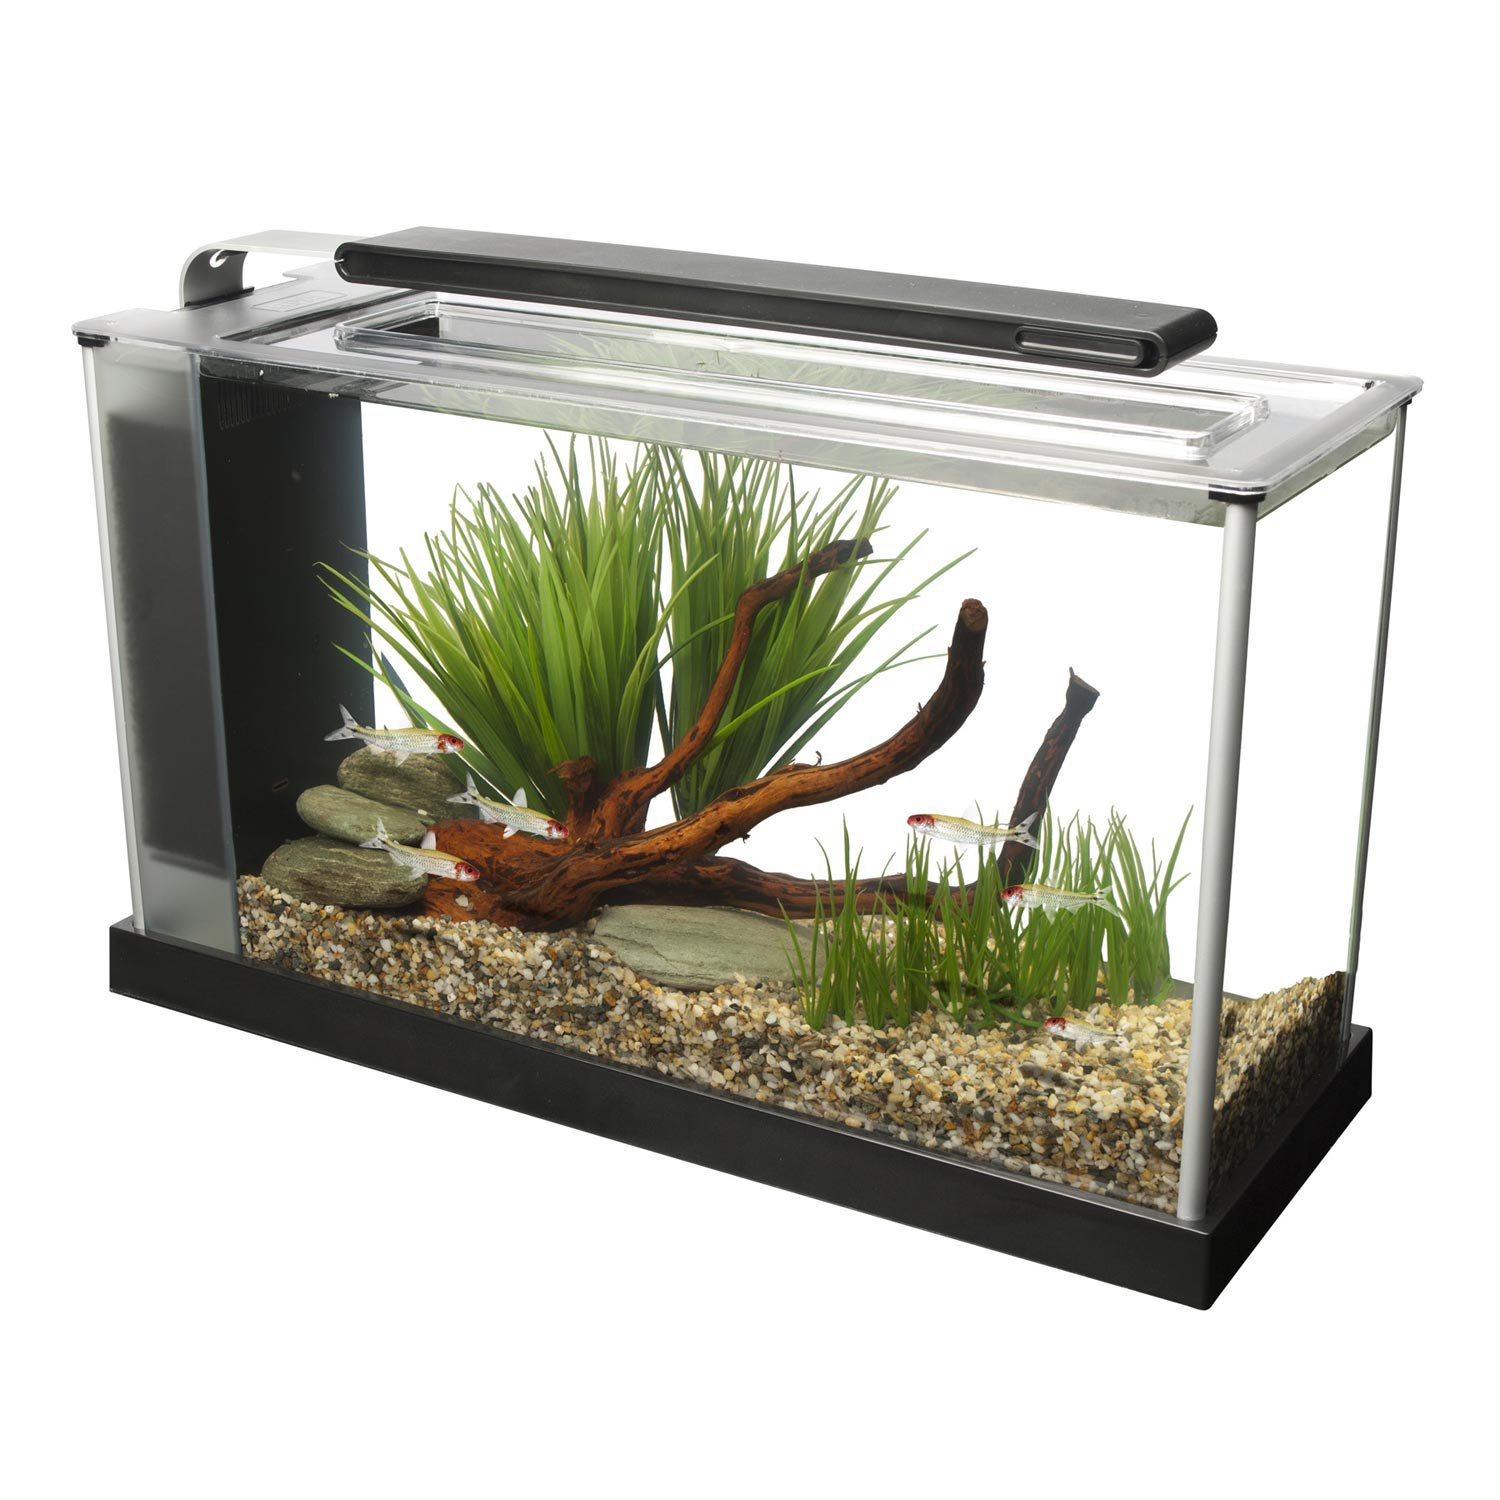 Fish aquarium for sale in karachi - Fluval Spec V Aquarium Kit In Black